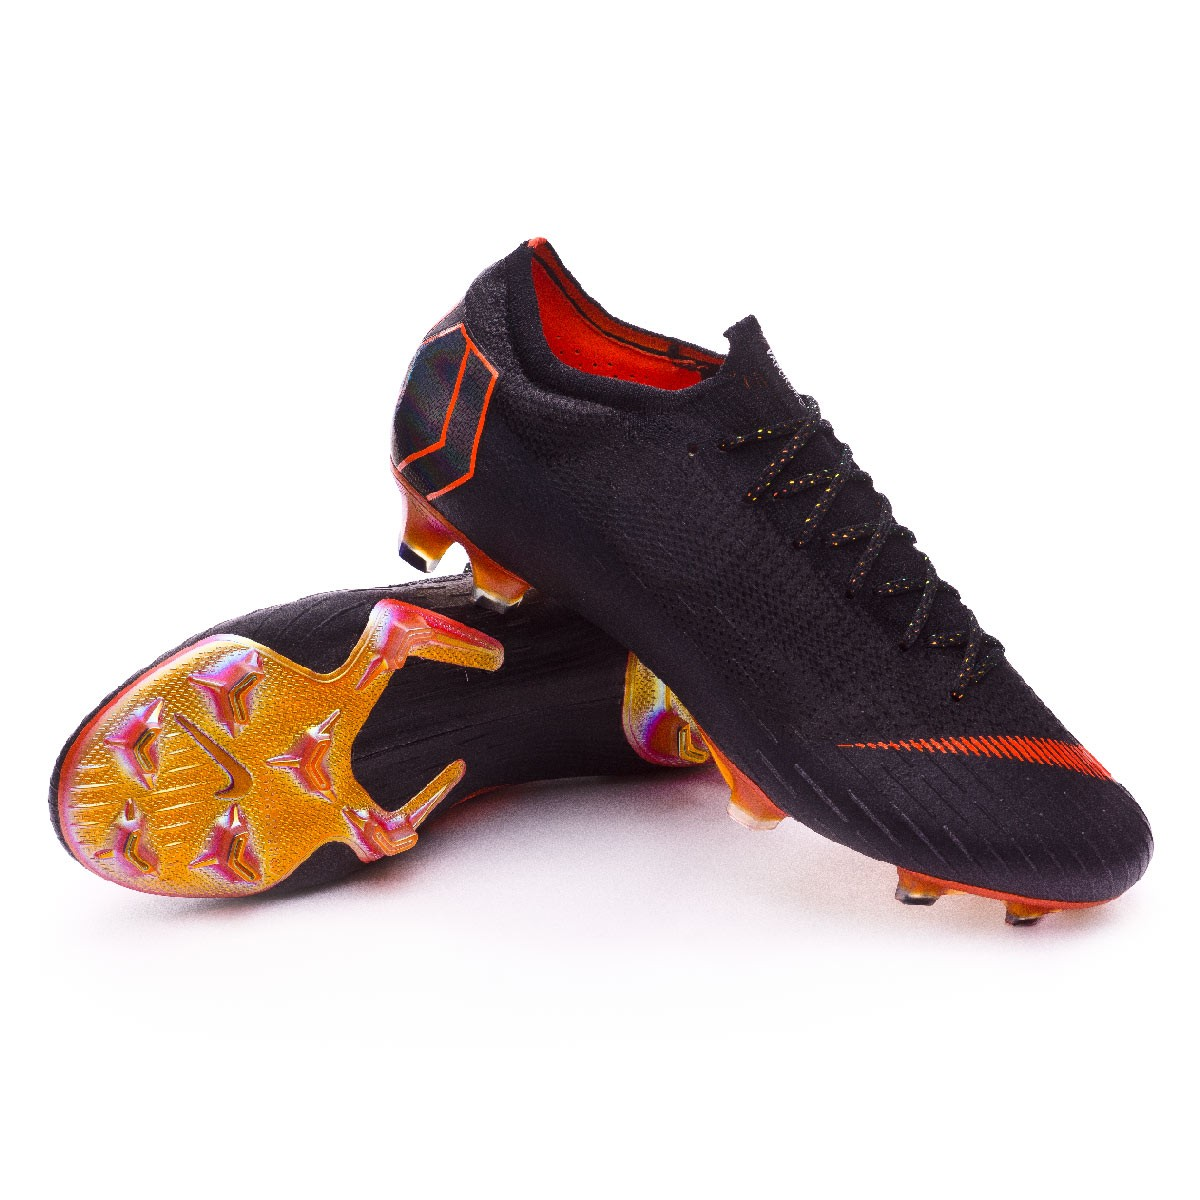 Boot Nike Mercurial Vapor XII Elite FG Black-Total orange-White ... f094f6c2a24c